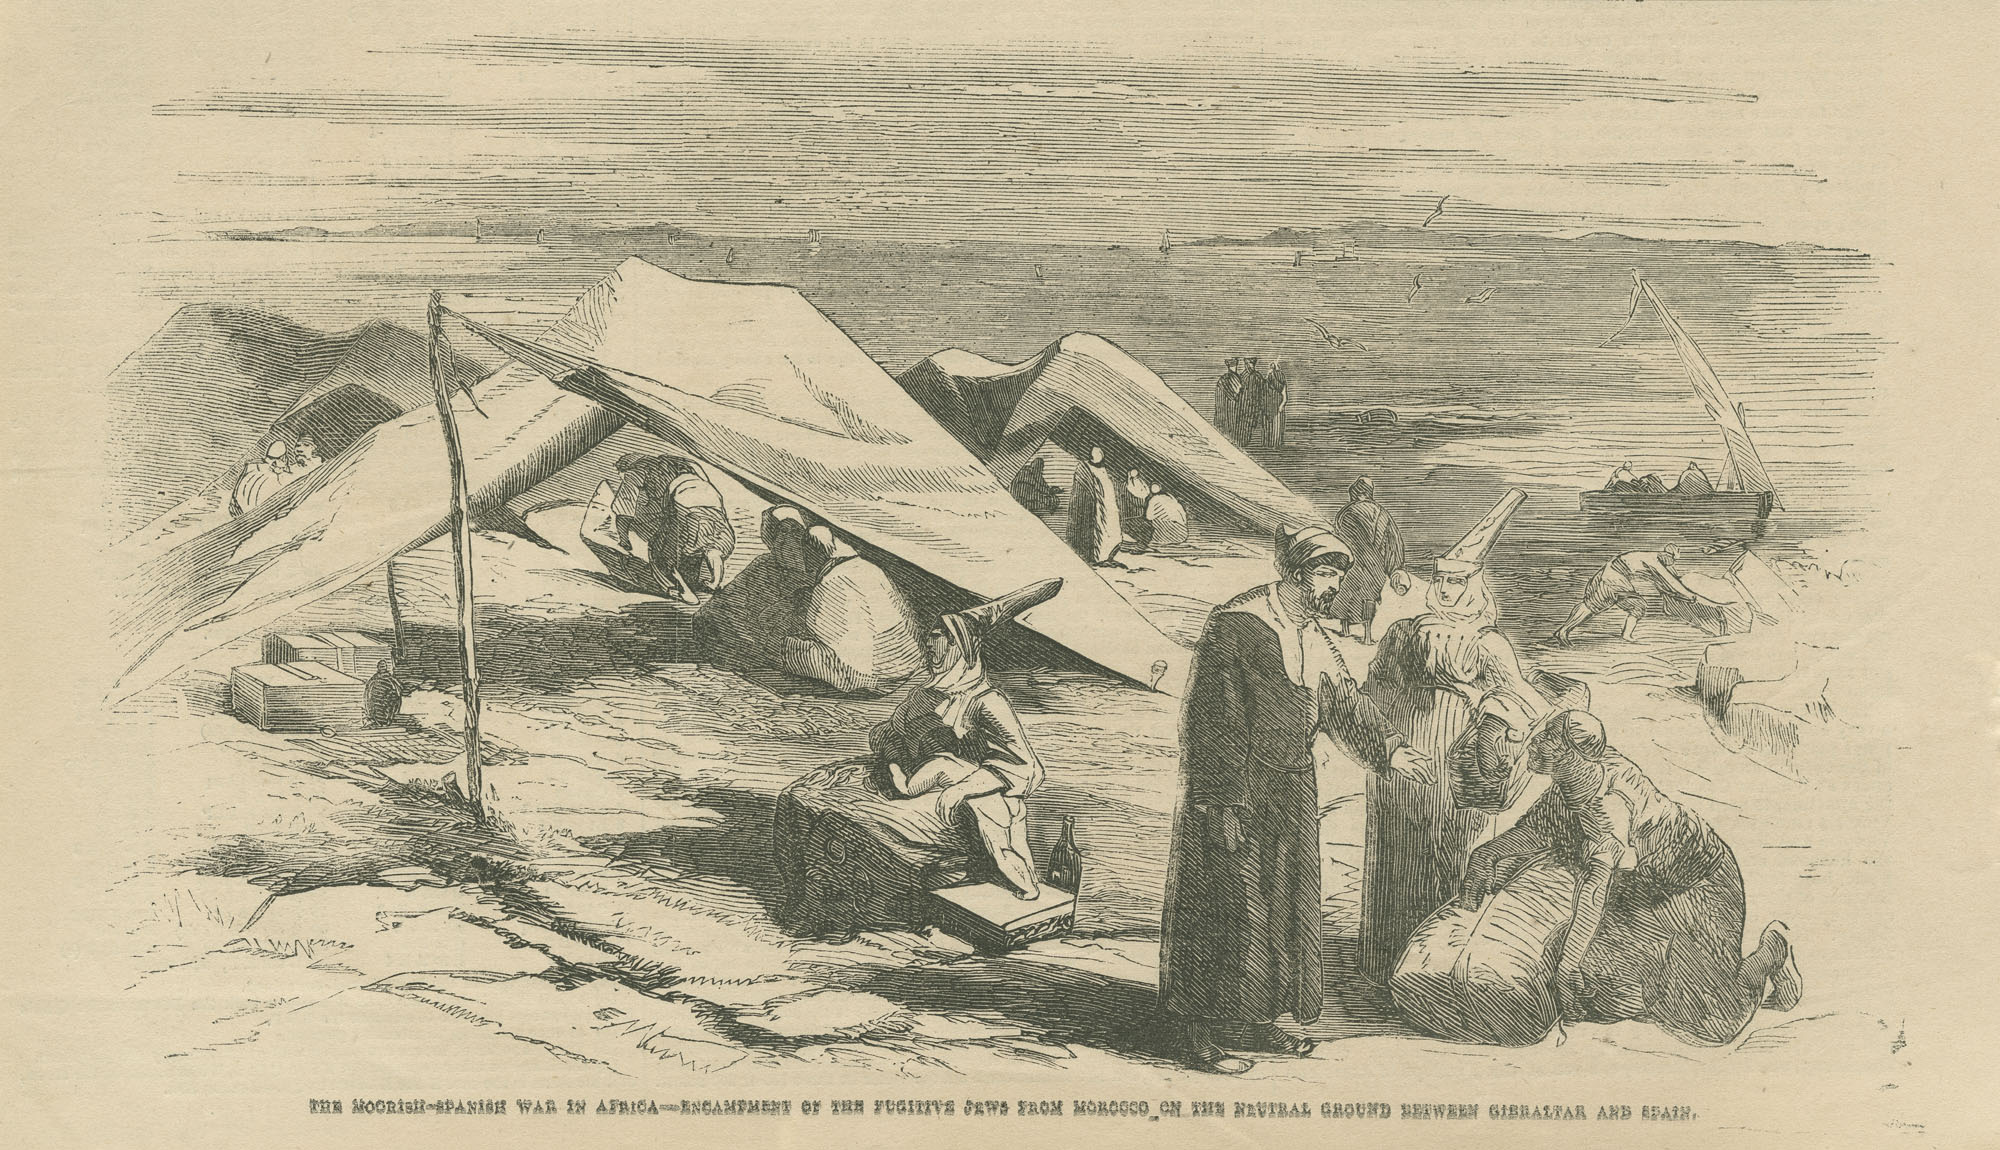 The Moorish-Spanish War in Africa--Encampment of the fugitive Jews from Morocco on the neutral ground between Gibraltar and Spain